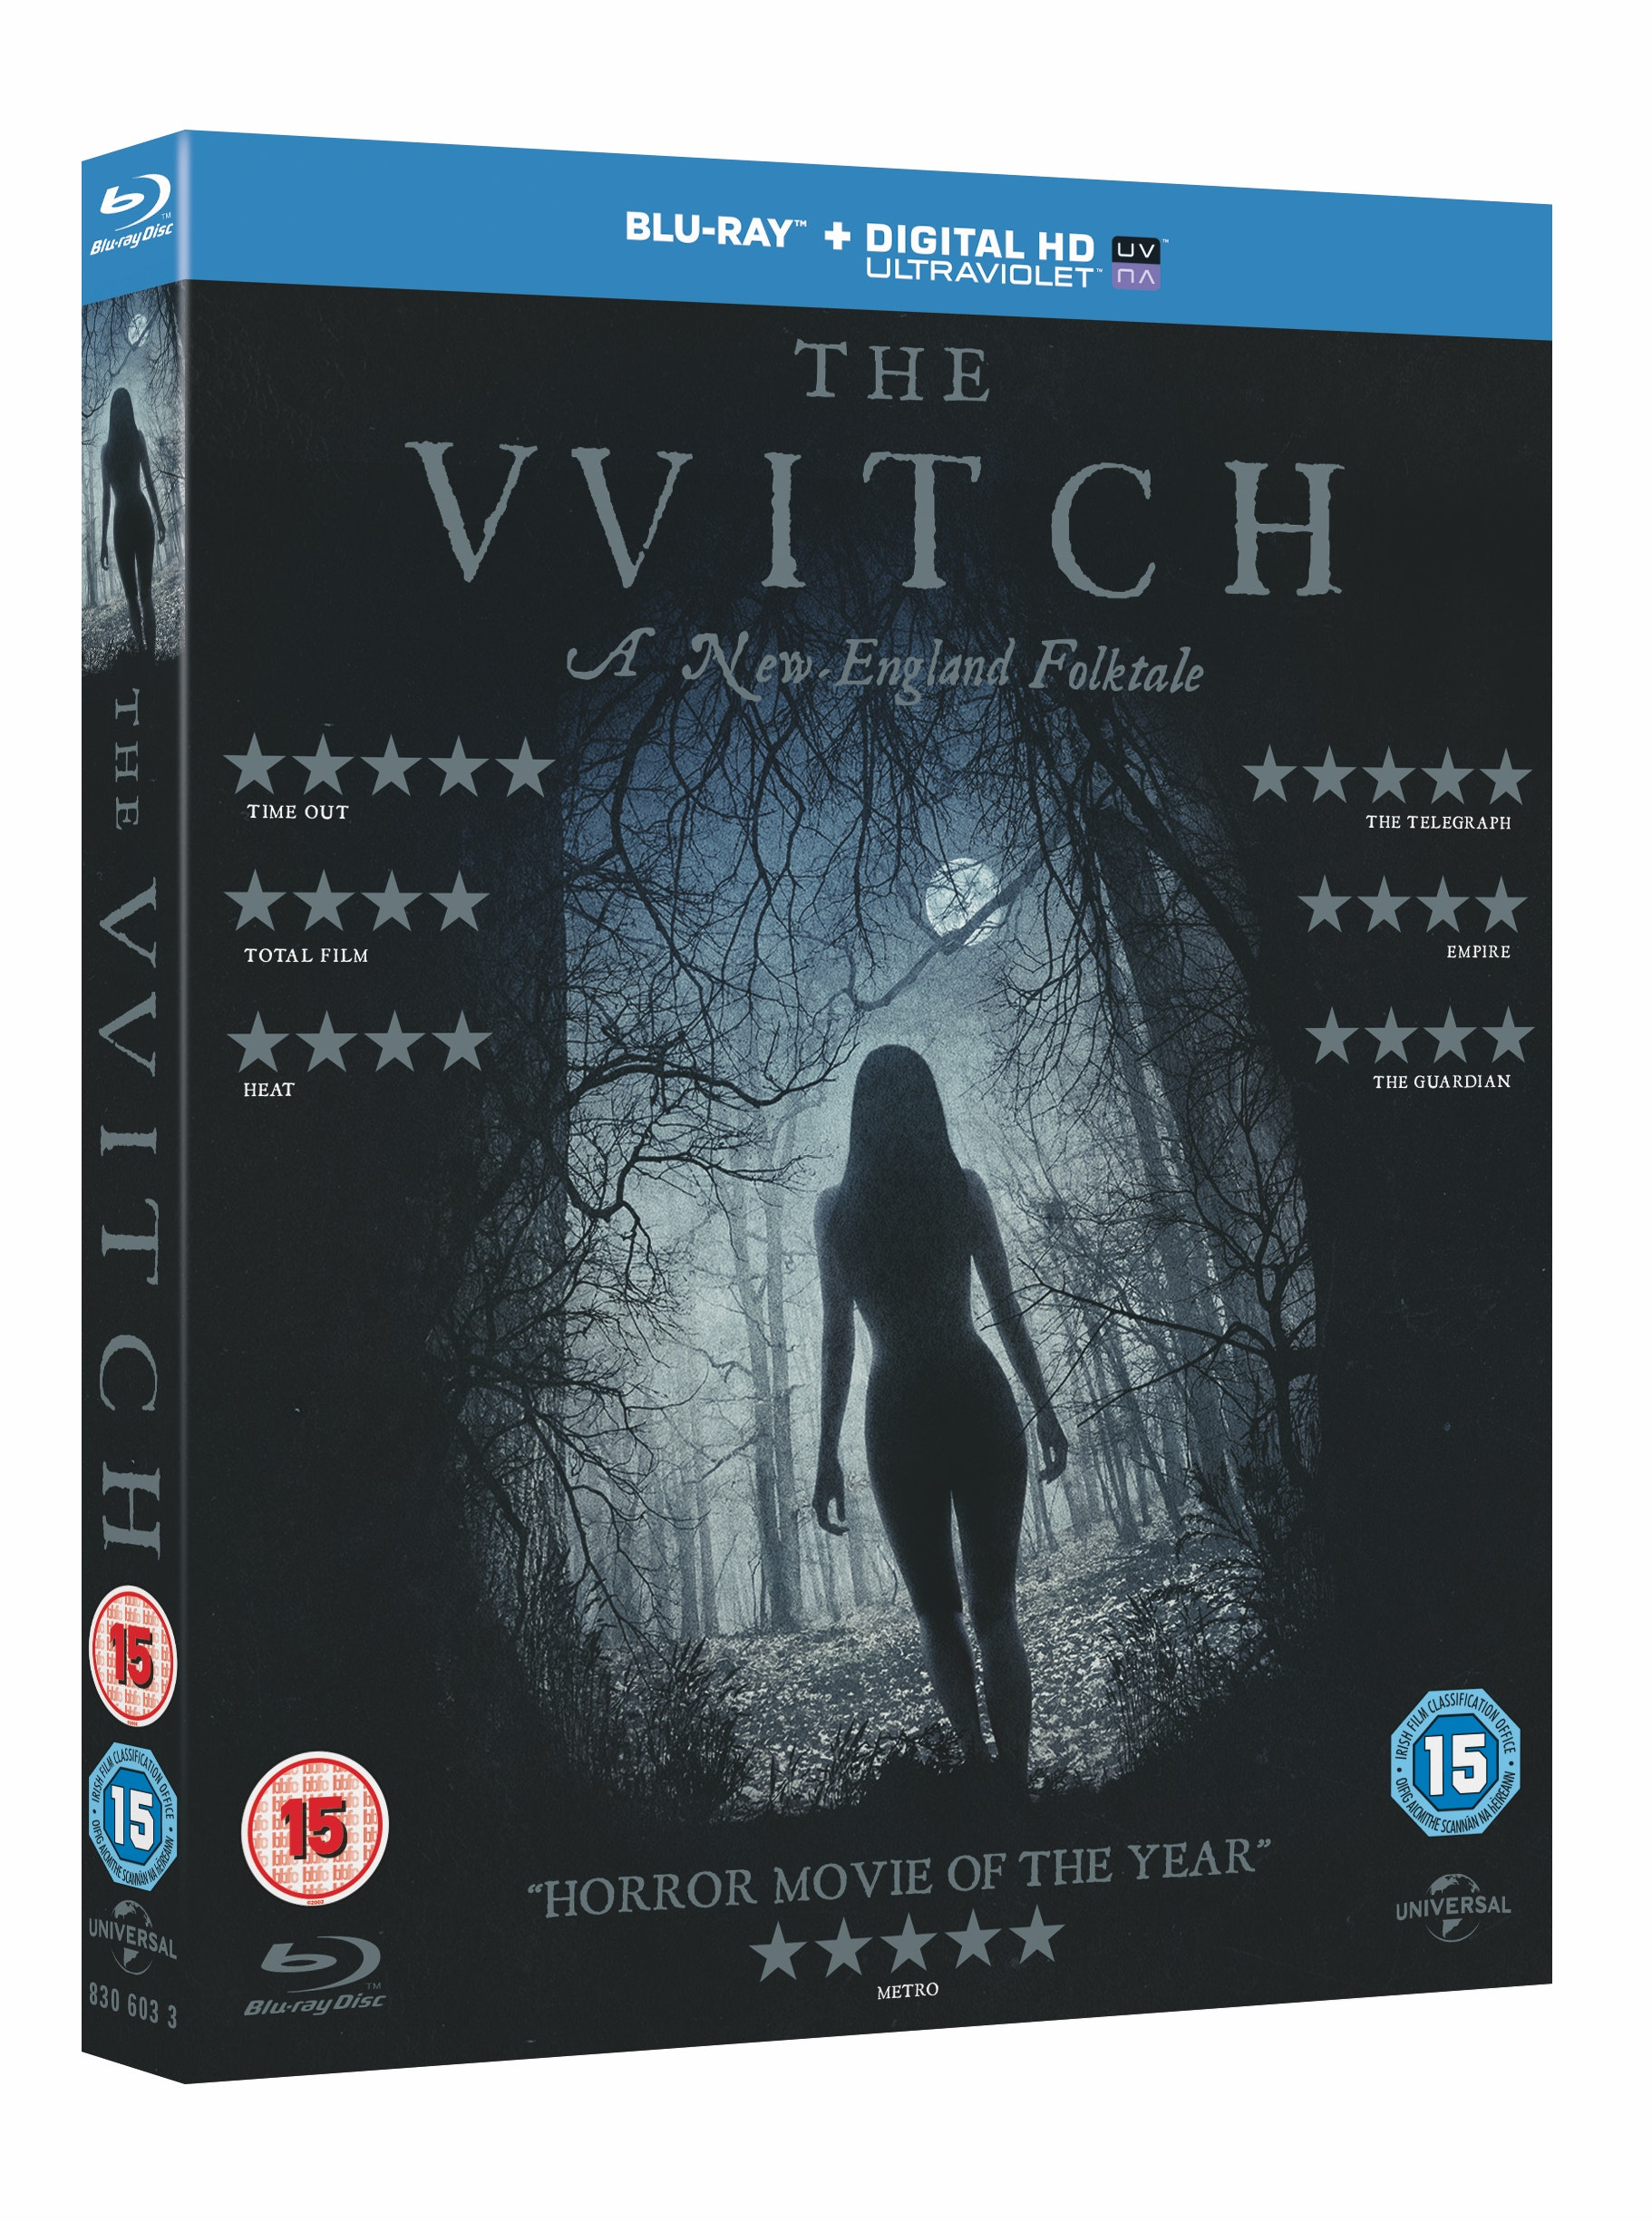 Win a copy of The Witch on Blu-ray™! sweepstakes